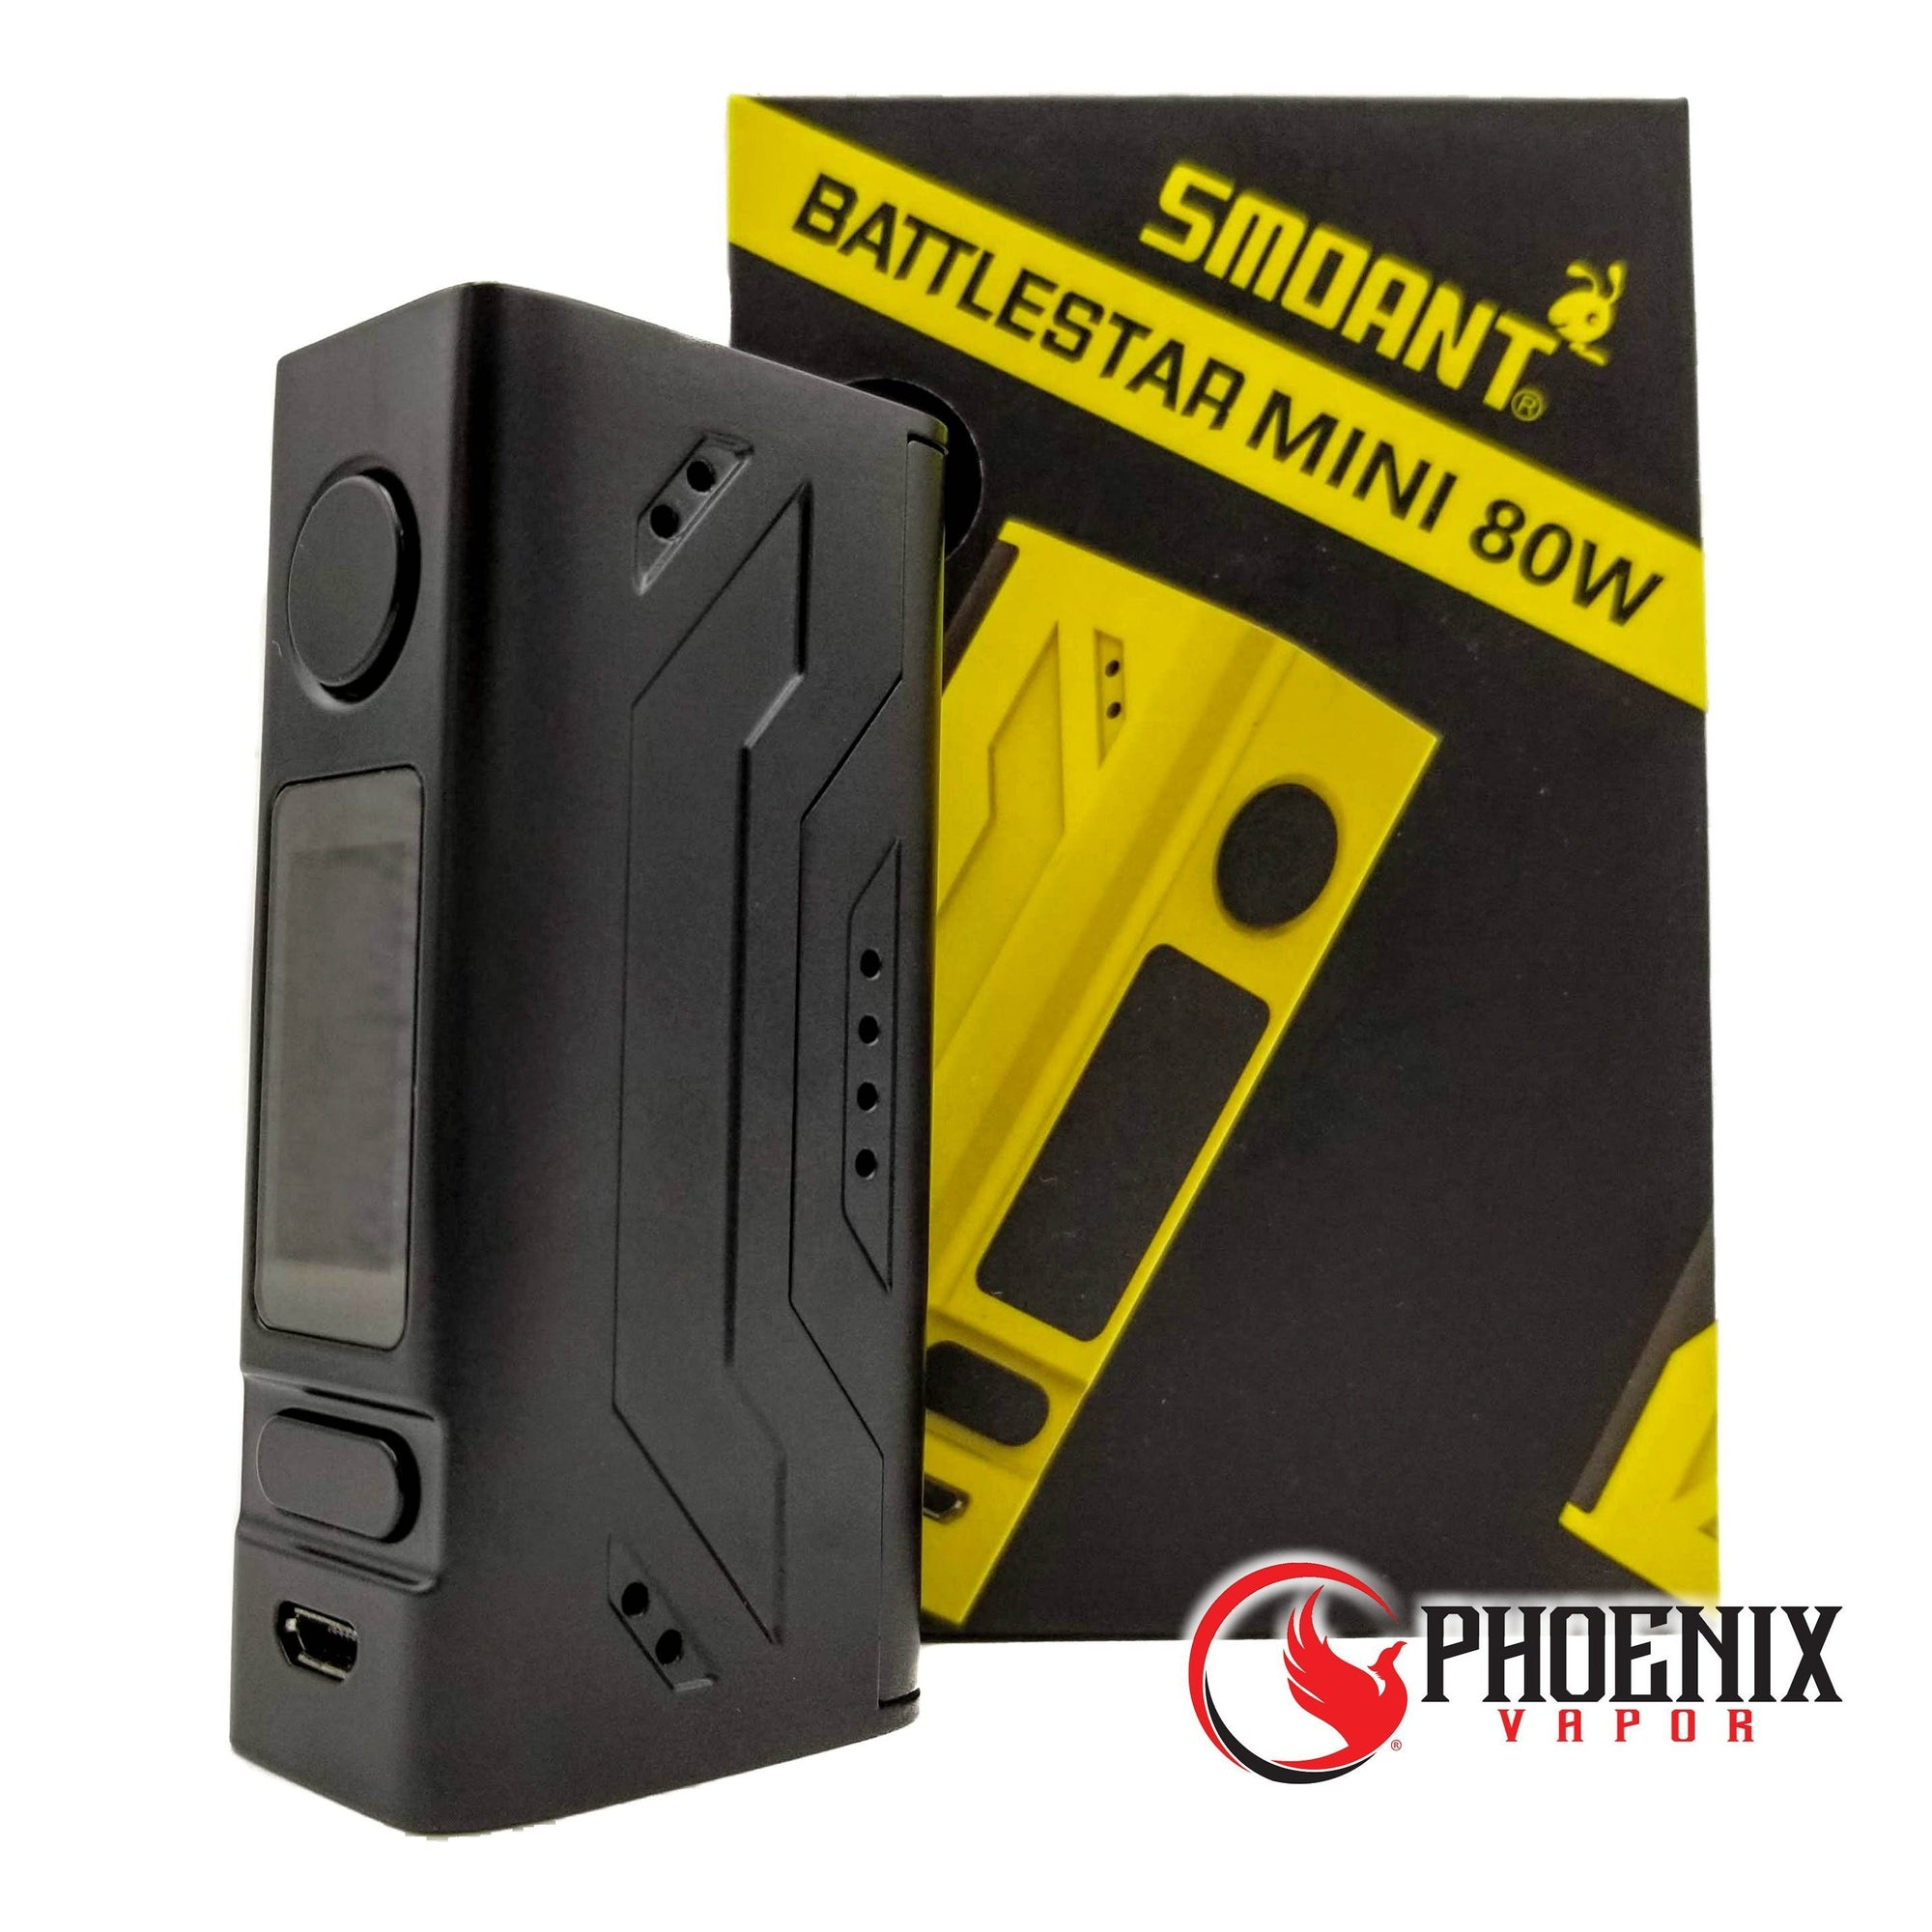 Smoant (Mods) Regulated Mod Black Smoant Battlestar Mini 80W TC Box MOD